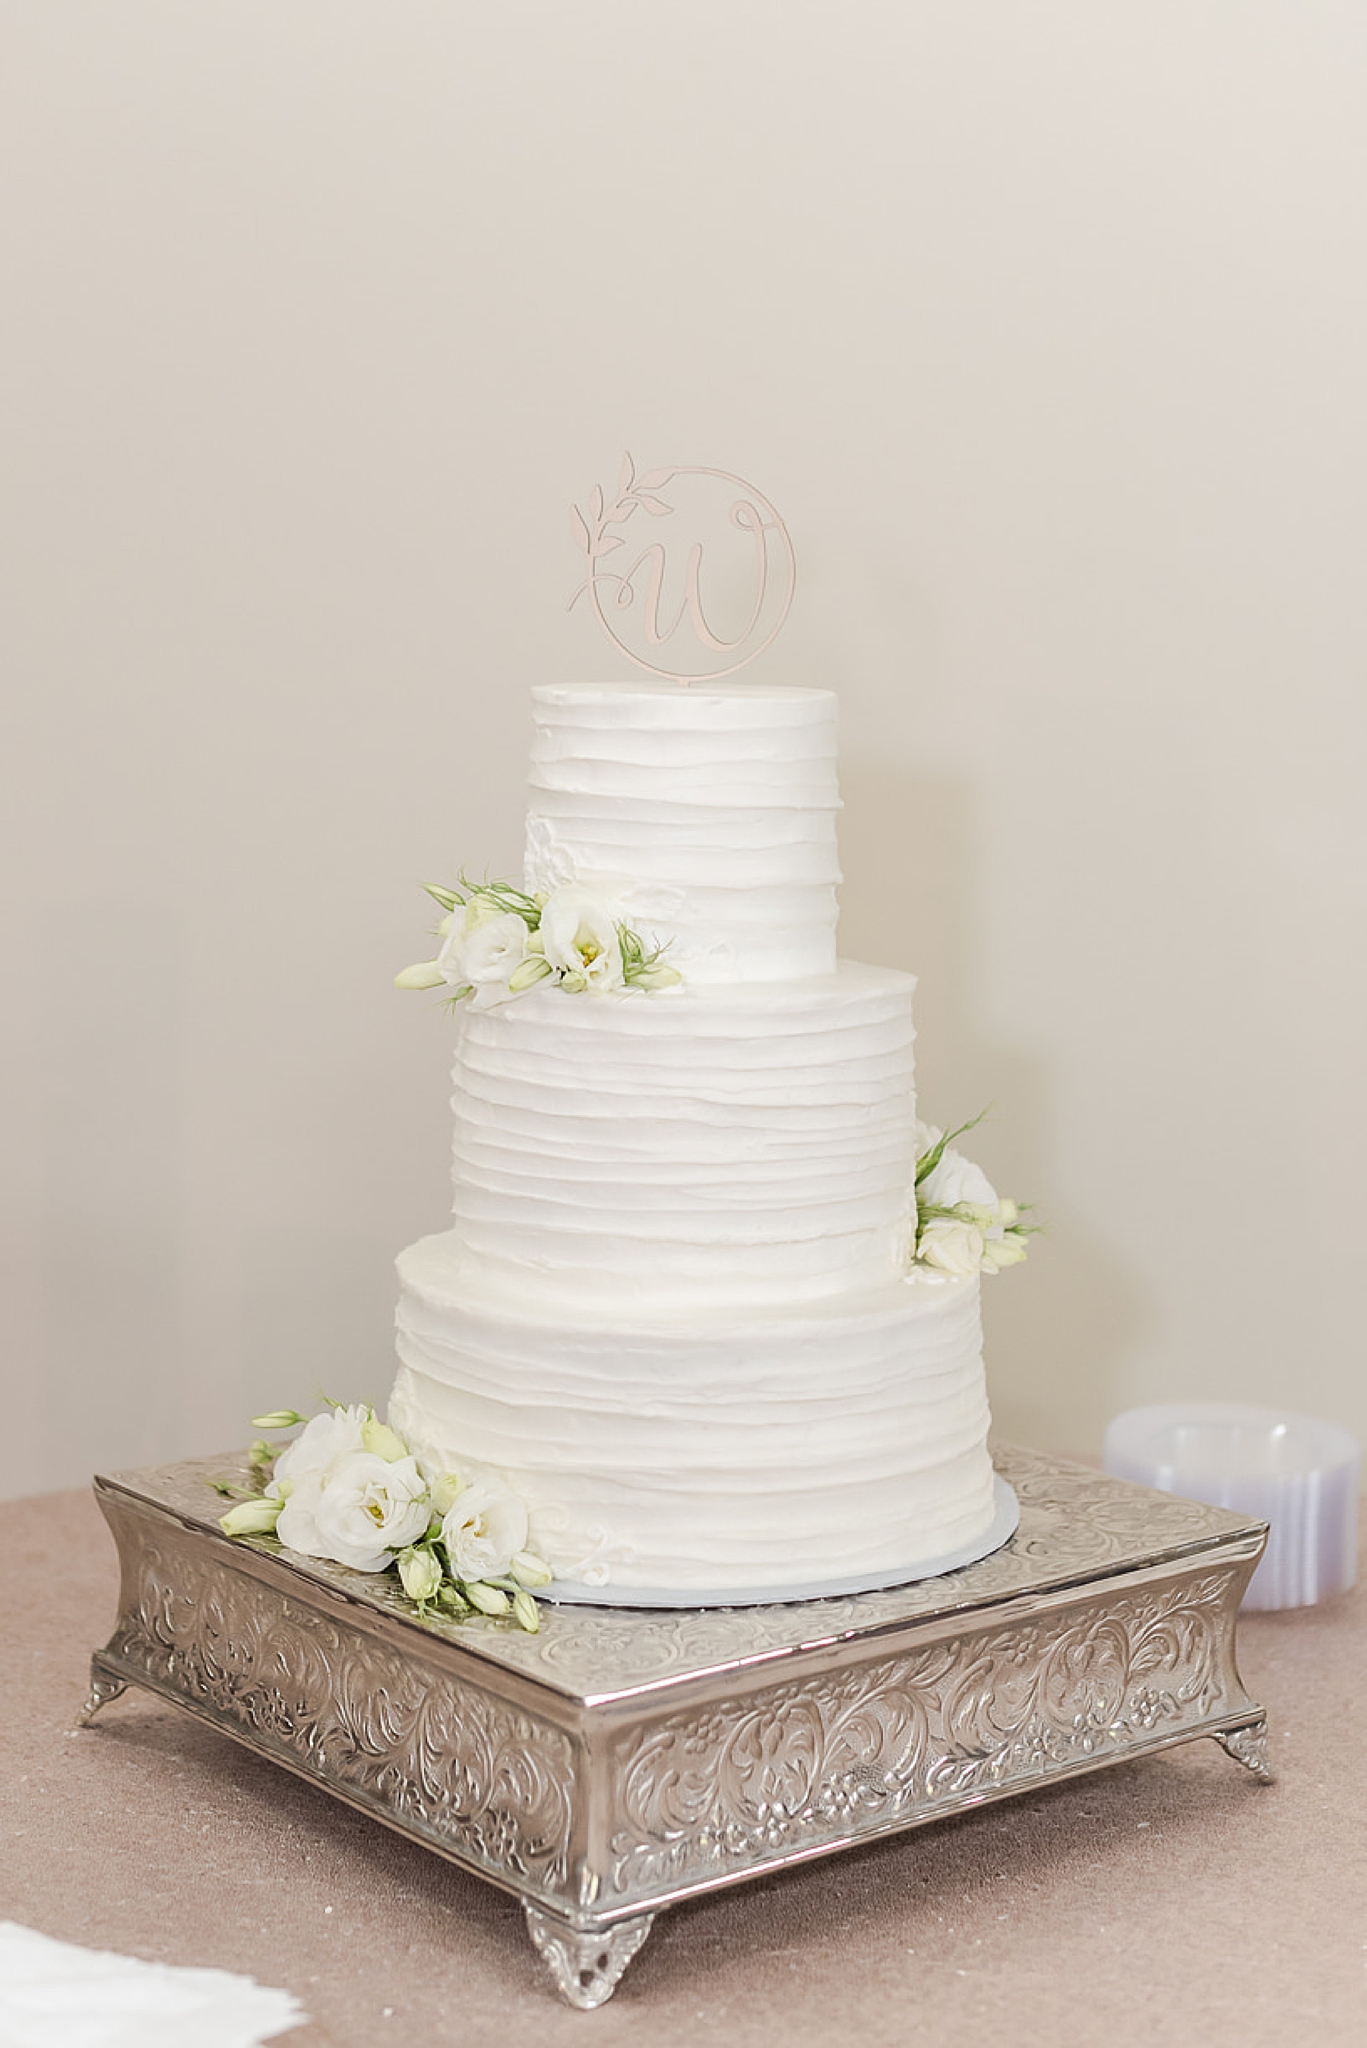 tiered wedding cake with simple cake topper